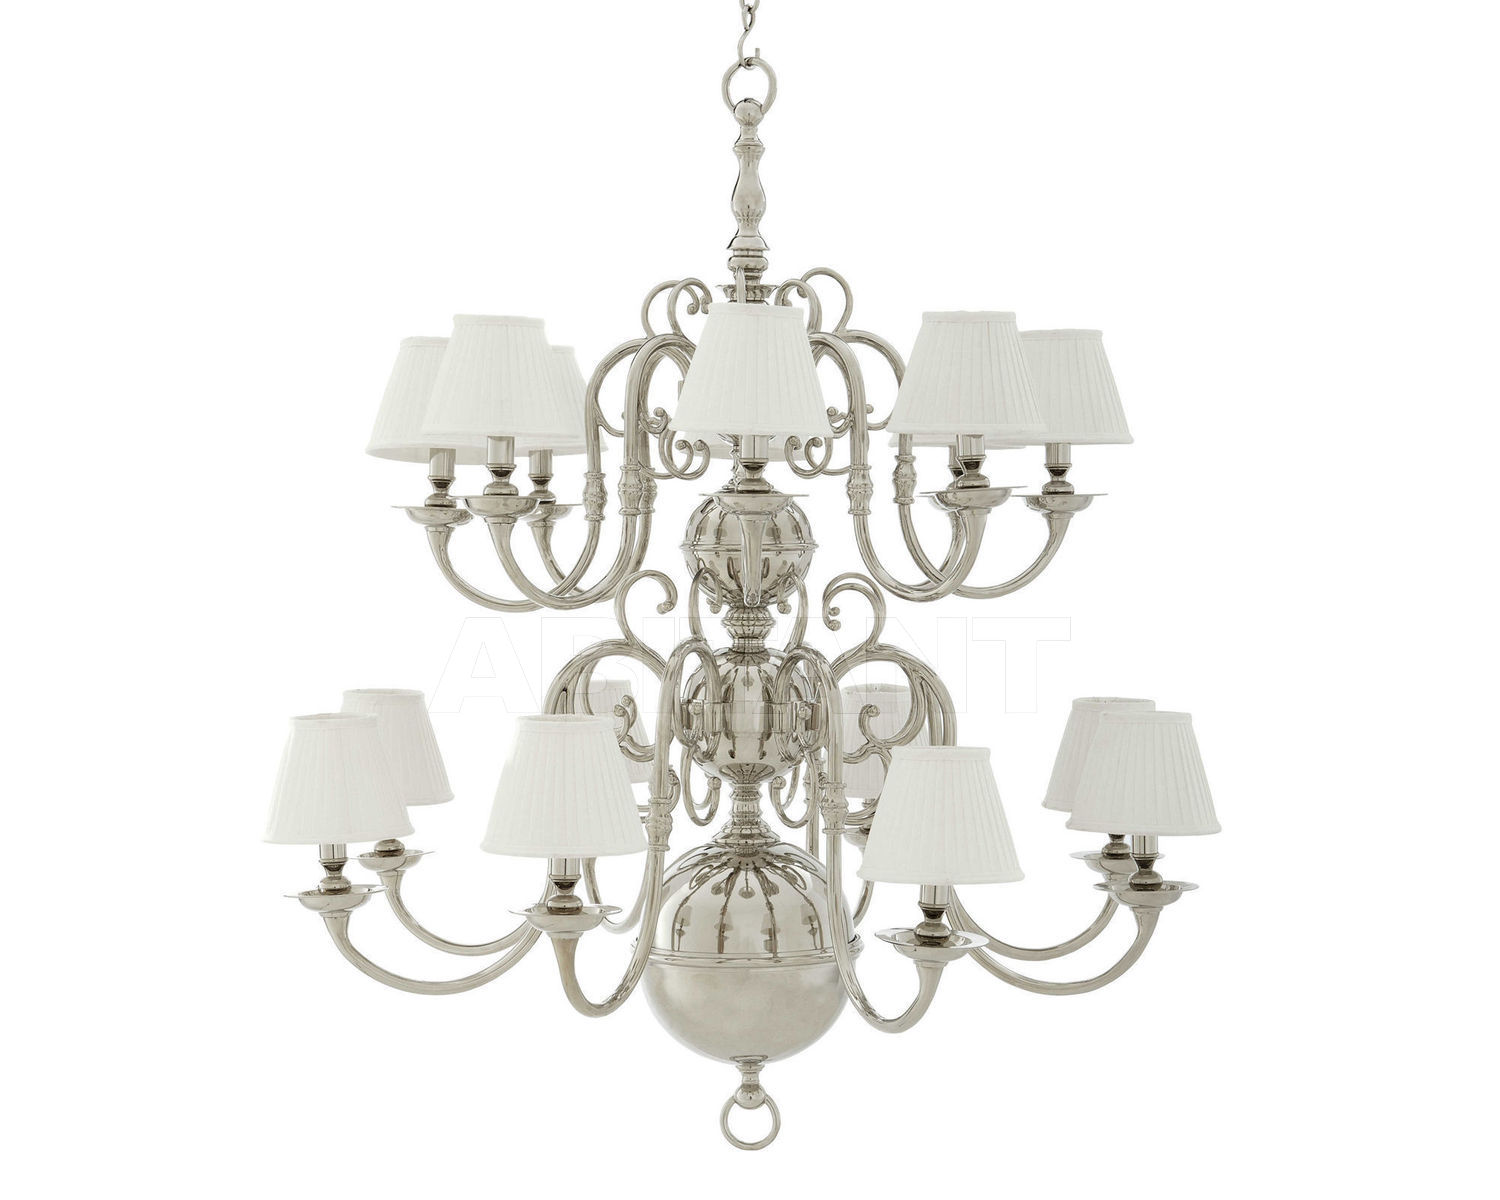 Купить Люстра La Coupole Eichholtz  Lighting 105793